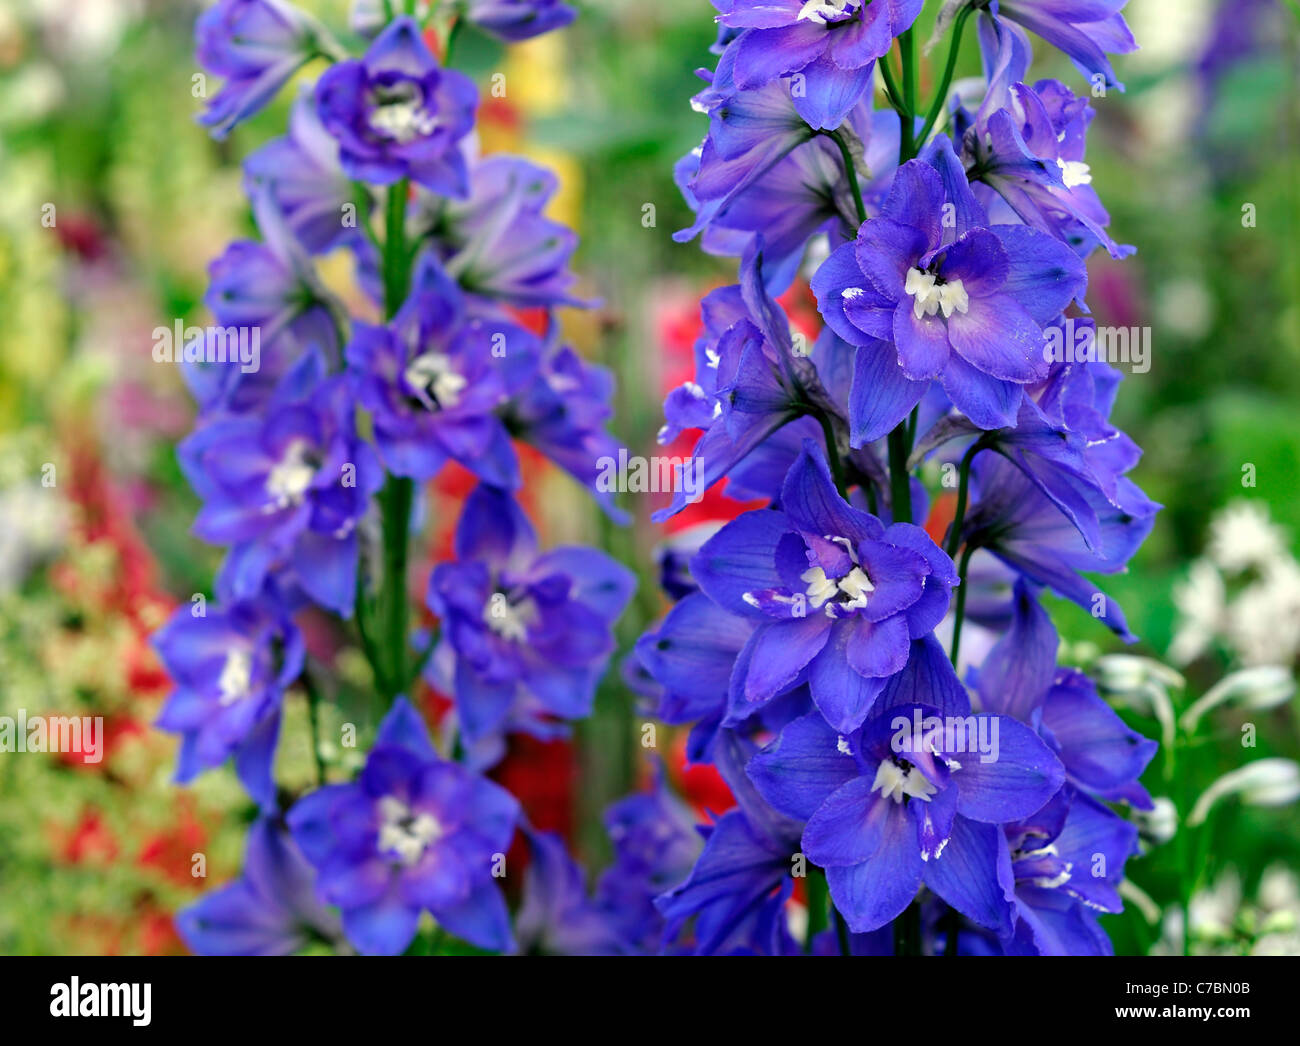 Rich blue delphinium hansenii independence herbaceous perennial rich blue delphinium hansenii independence herbaceous perennial tall erect flower spike bloom blossom flowers blooms blossoms mightylinksfo Image collections